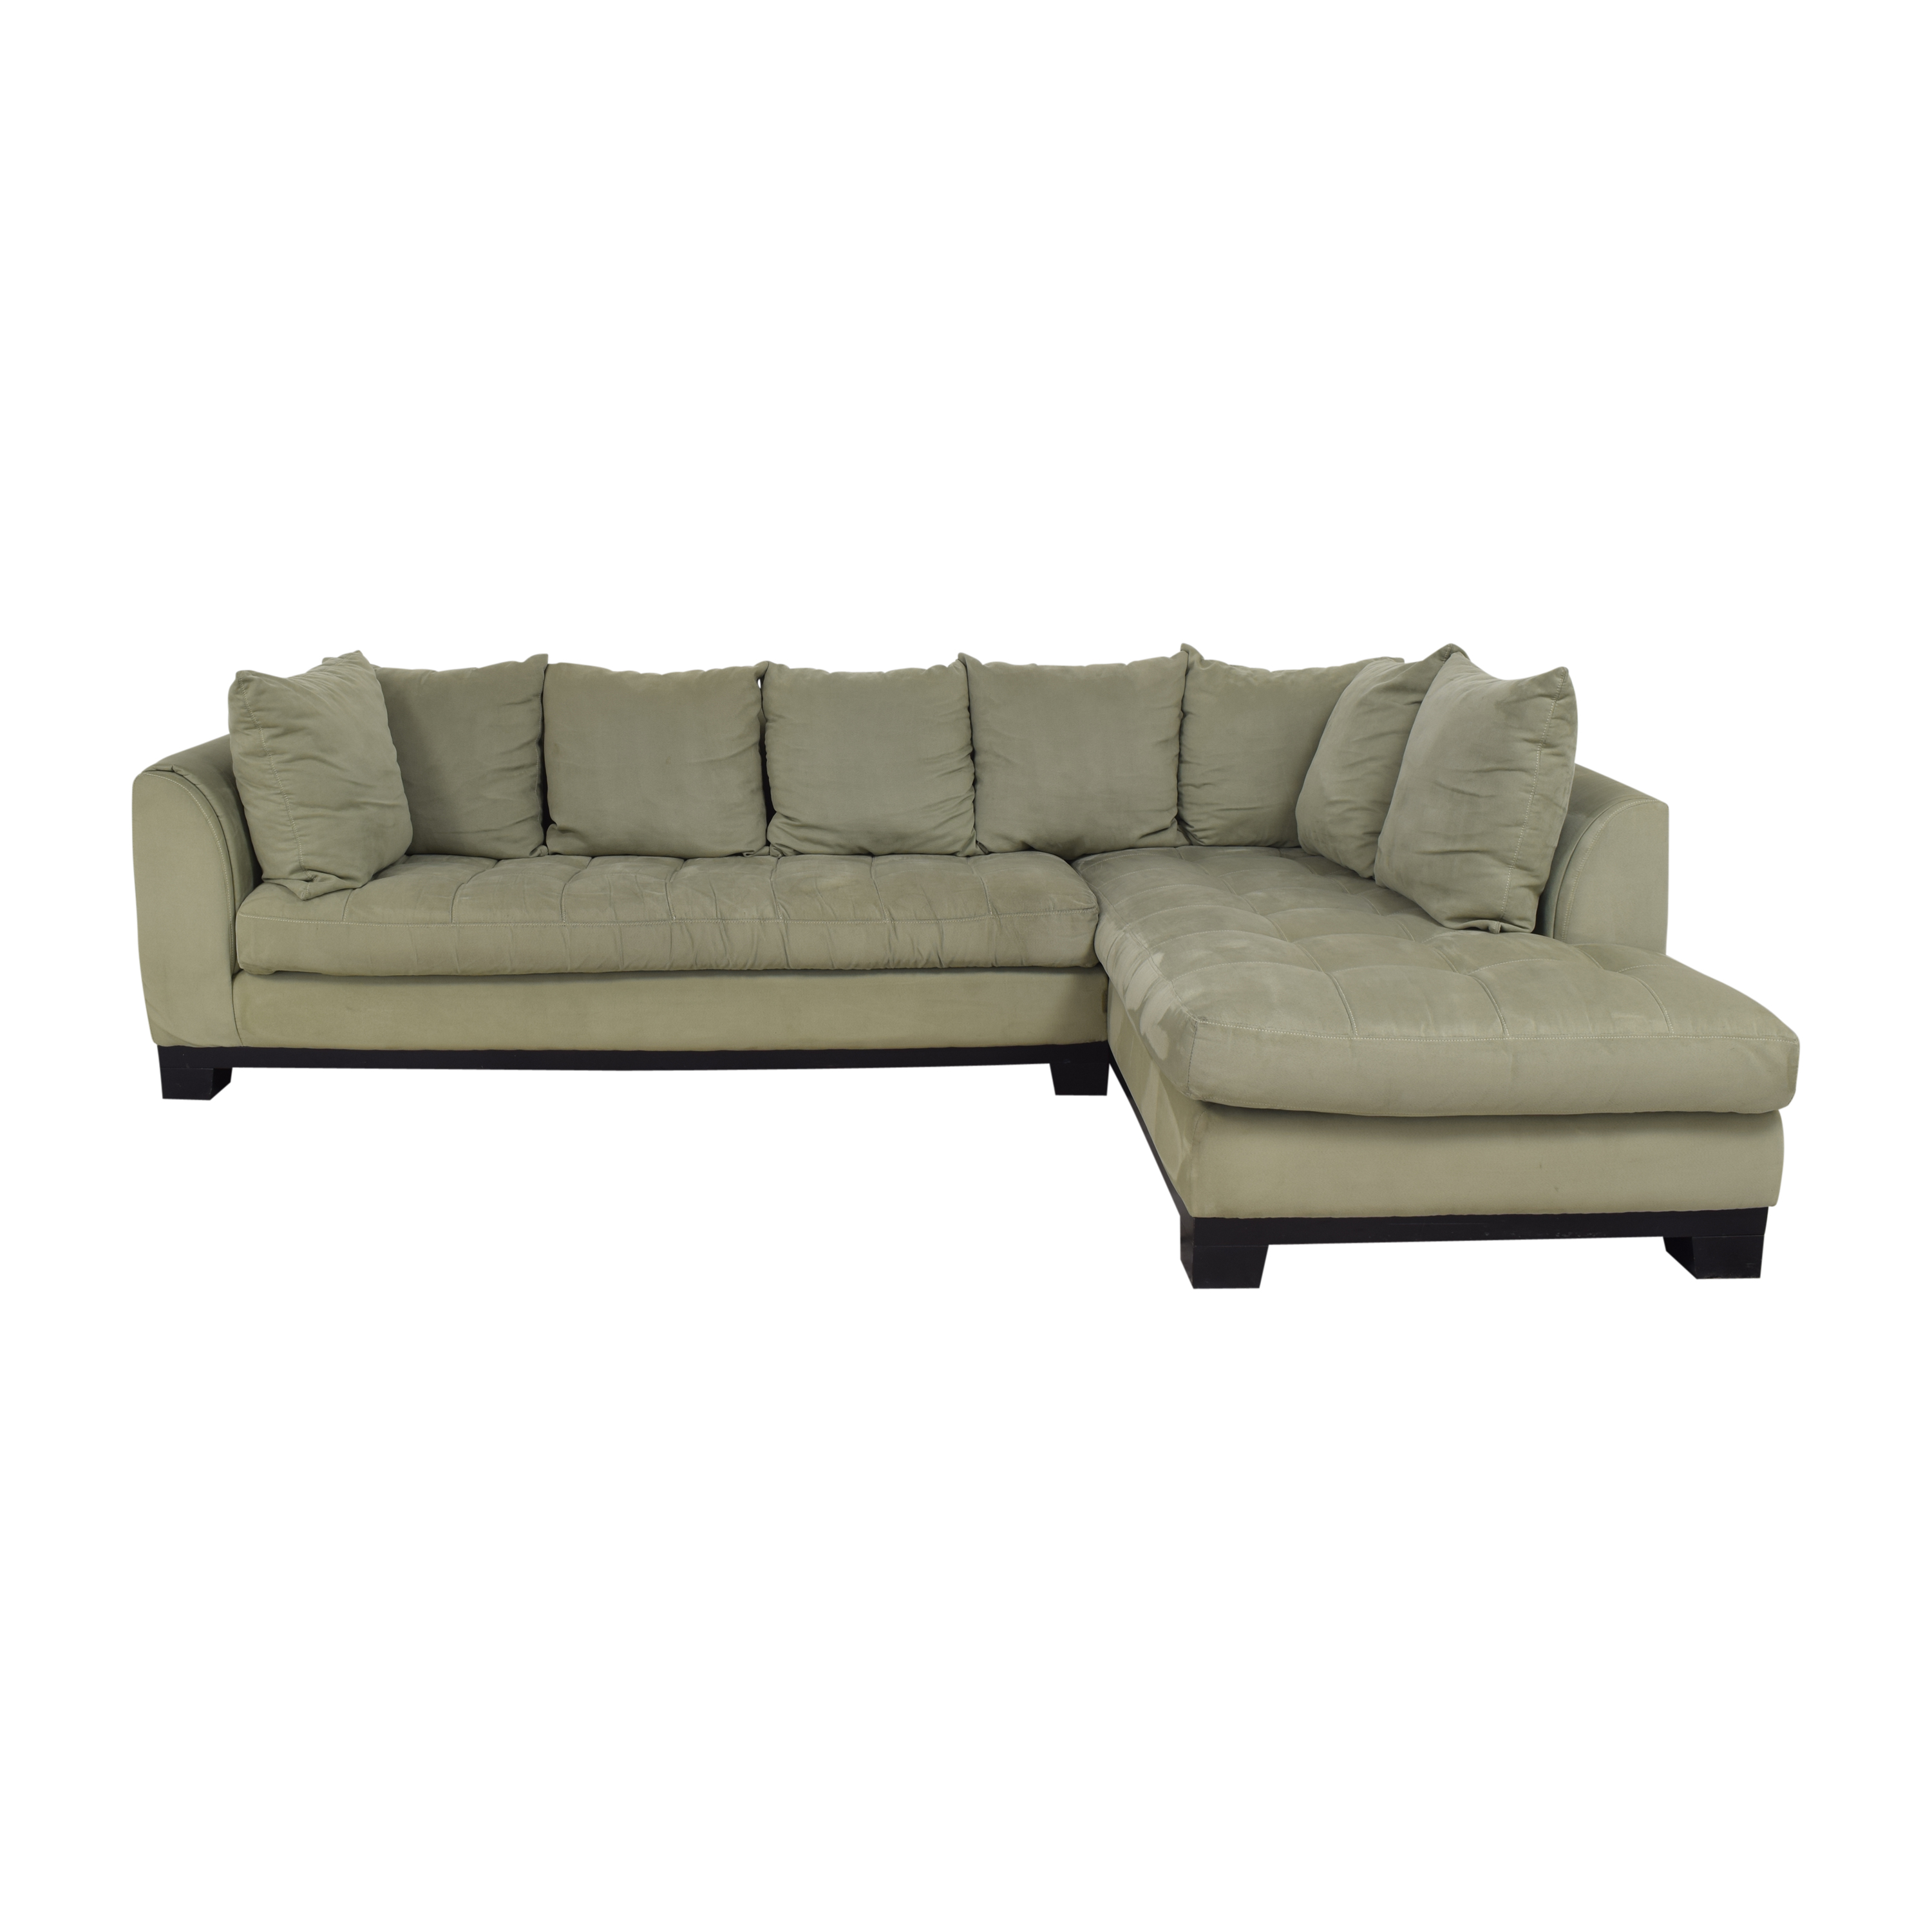 Robinson & Robinson Robinson & Robinson Sectional Sofa with Chaise coupon